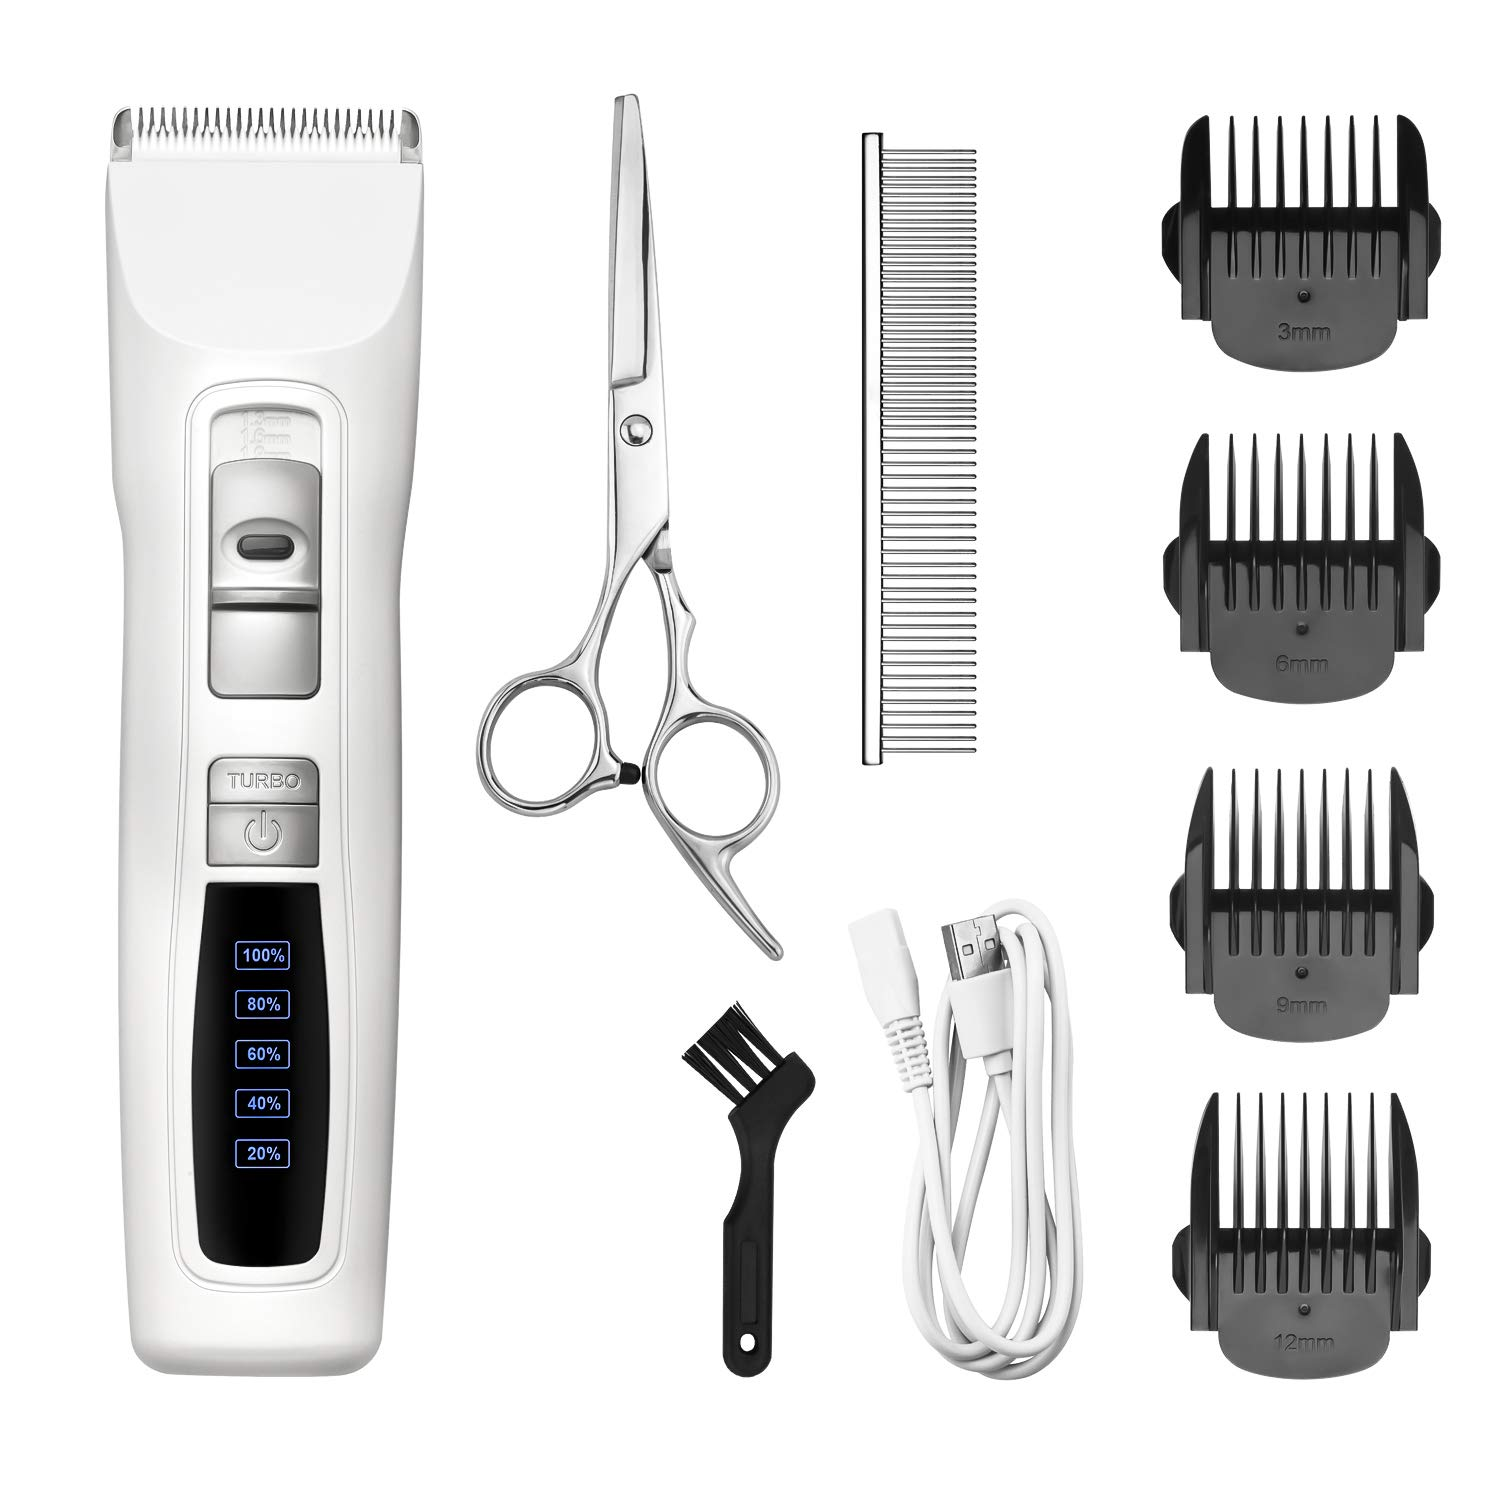 Bousnic Dog Clippers 2-Speed Cordless Grooming Clippers Kit